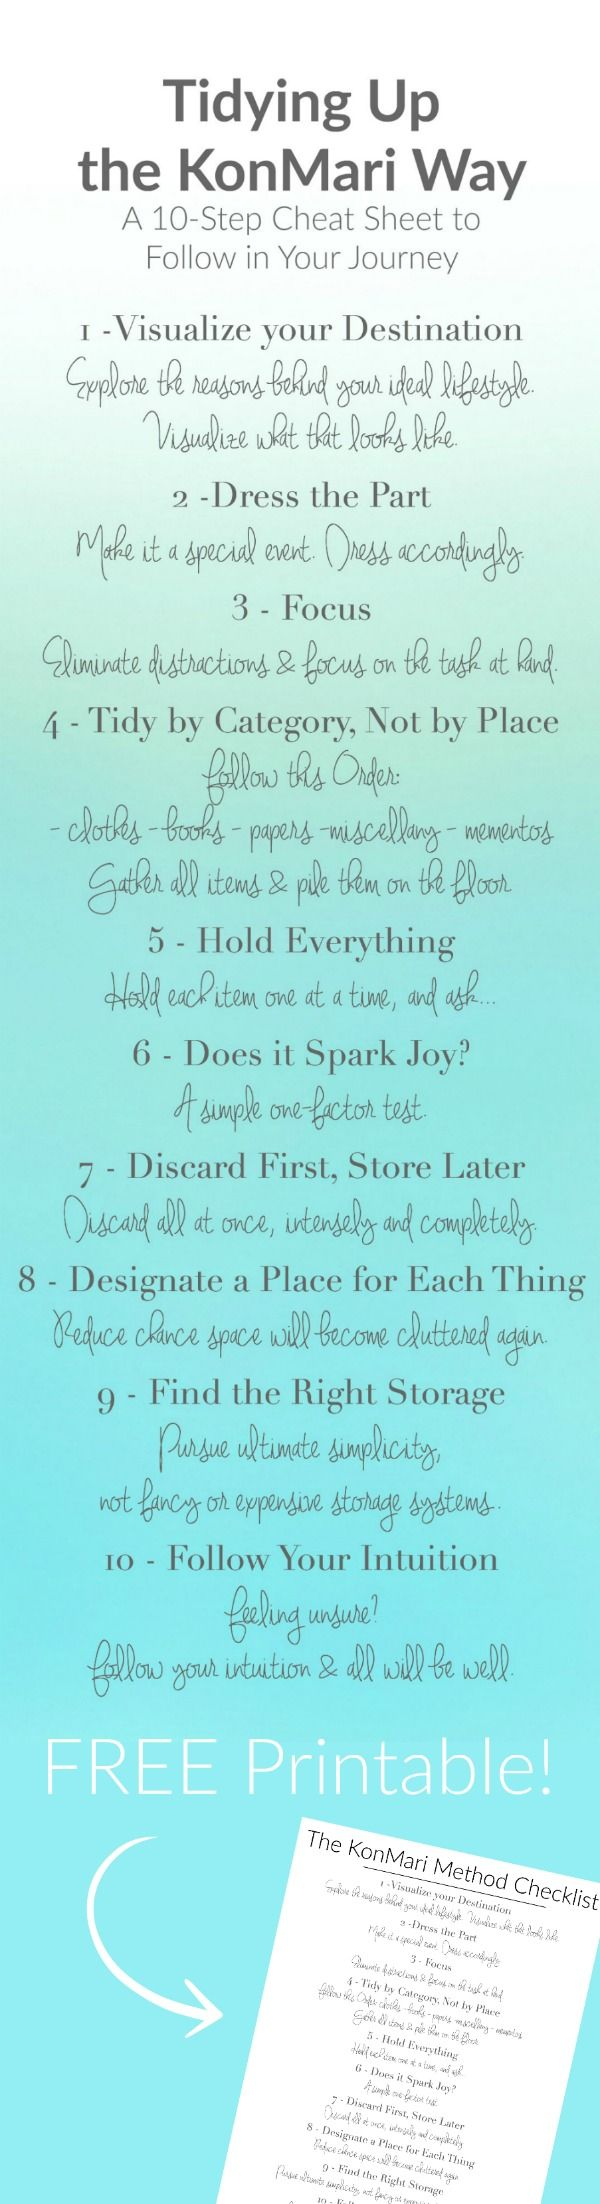 """Tidying Up The KonMari way. Have you read """"The Life-Changing Magic of Tidying Up"""" and """"Spark Joy"""" by Marie Kondo? Are your ready to tidy up and organize your home and life? Use this FREE printable 10-point checklist to get started!"""